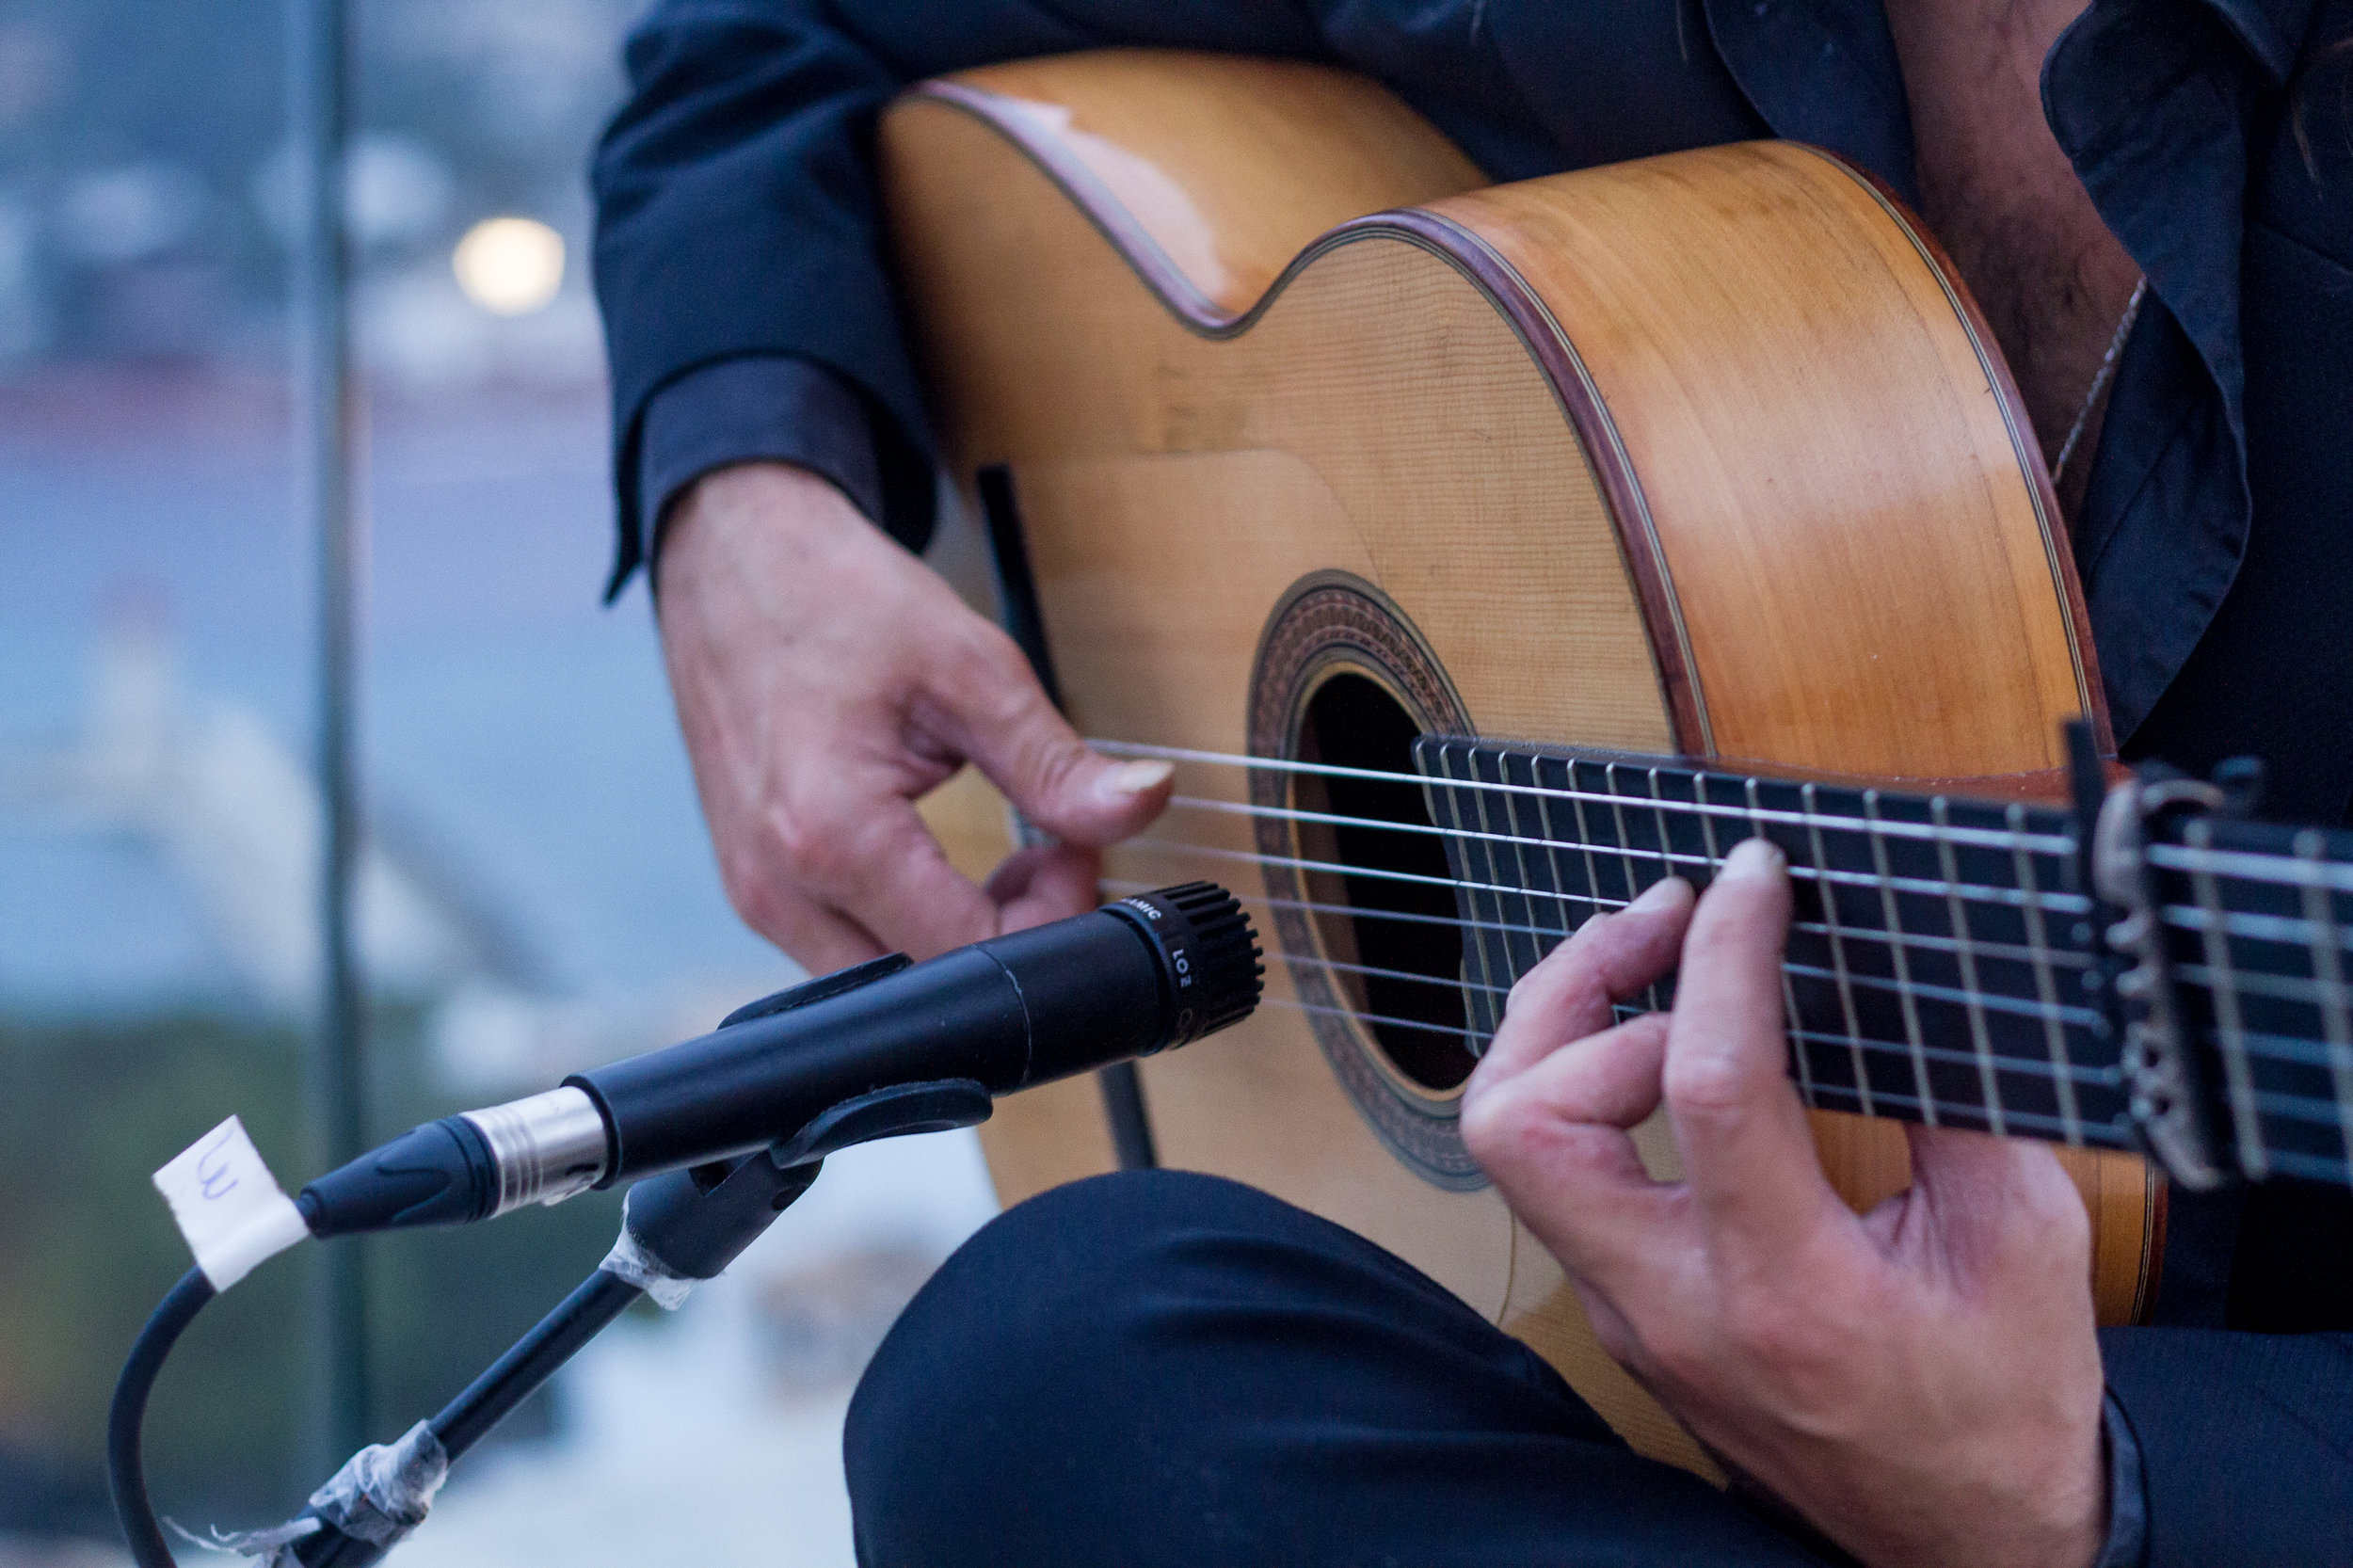 - Music Package. Whether you enjoy a live band or a peaceful guitarist, music is the perfect addition to an evening meal or celebration. We can have these performances scheduled to suit your plans.